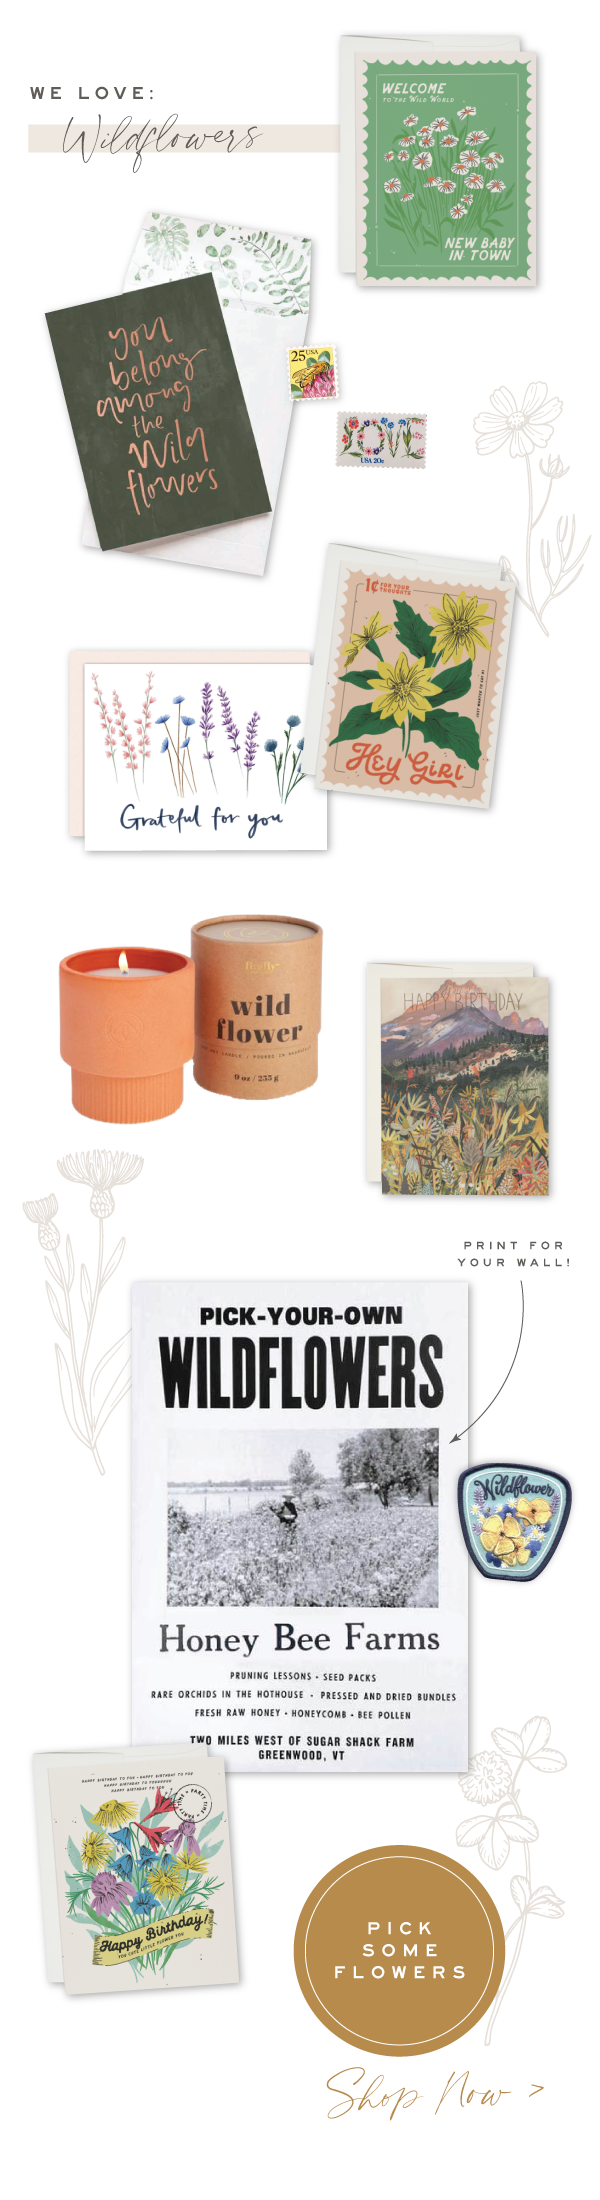 Urbanic loves Wildflowers